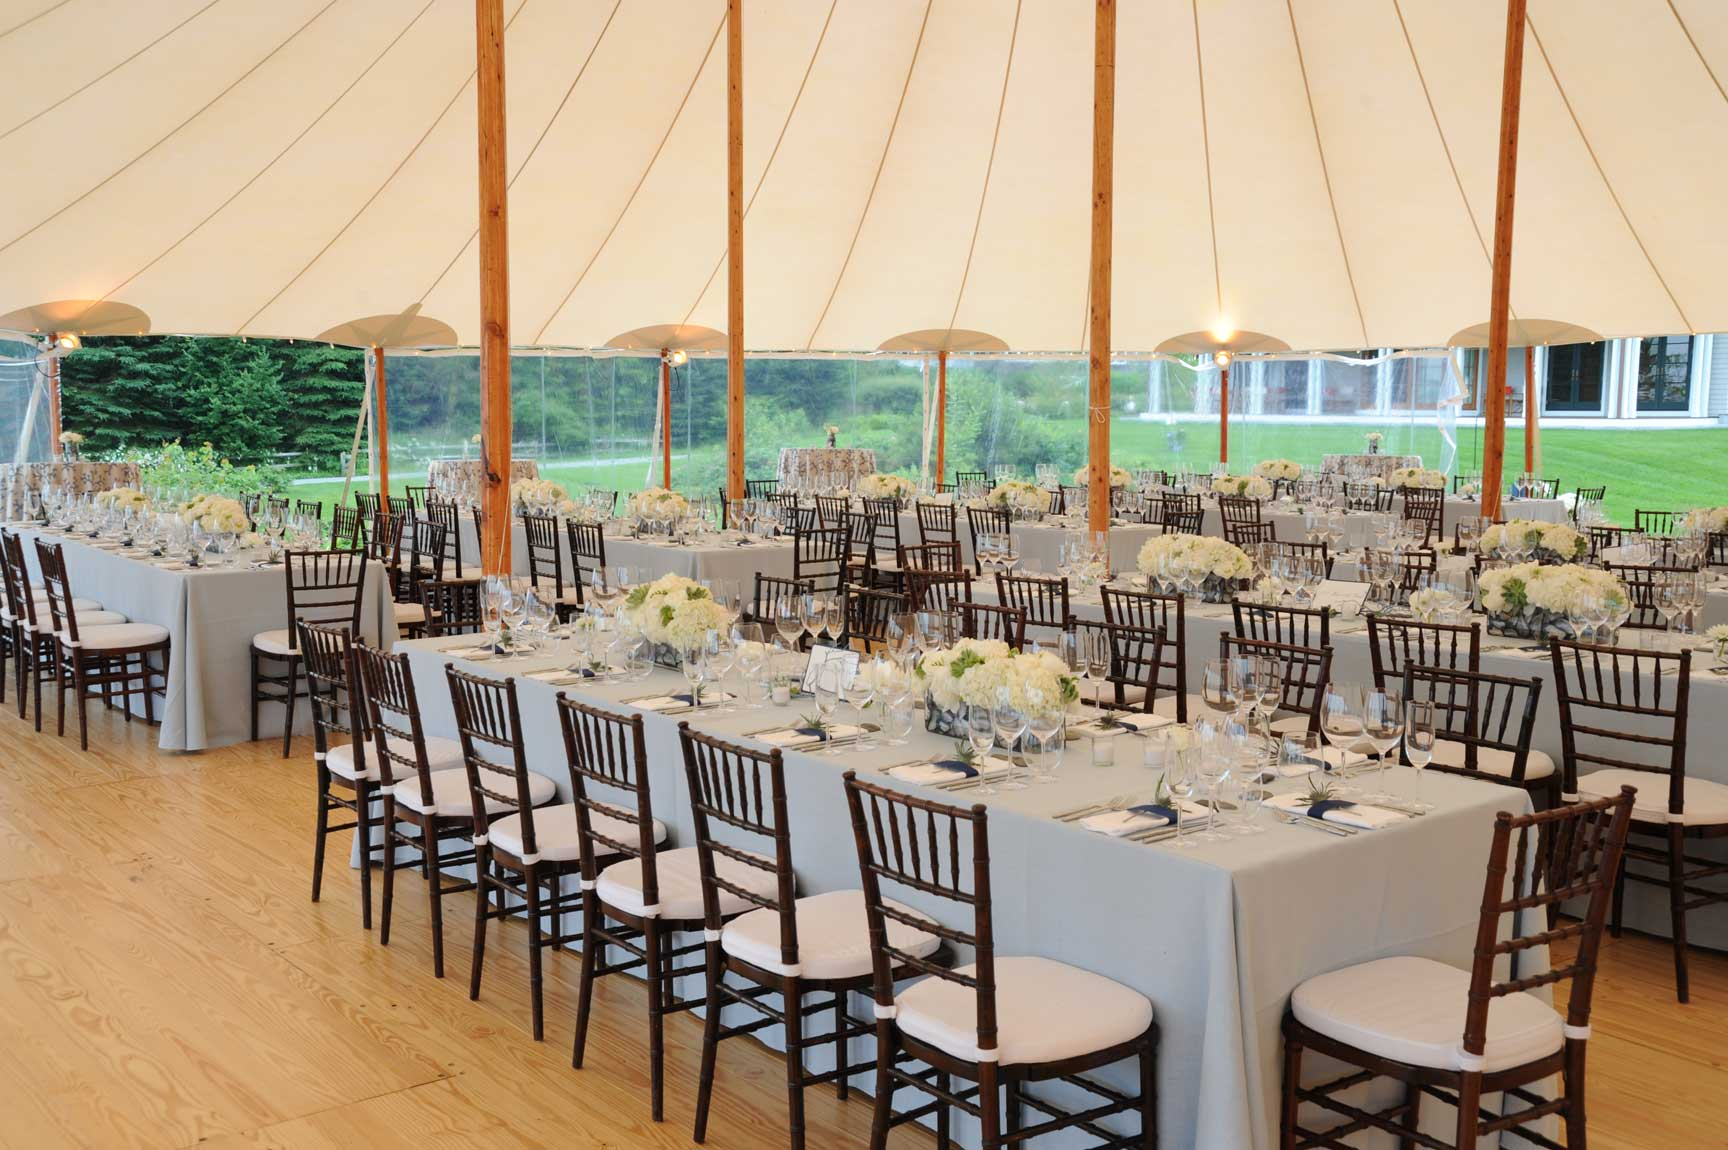 Prouts Neck wedding - White tablescapes and a grandiose tent create a striking backdrop for this Cape Elizabeth wedding. www.churchillevents.com